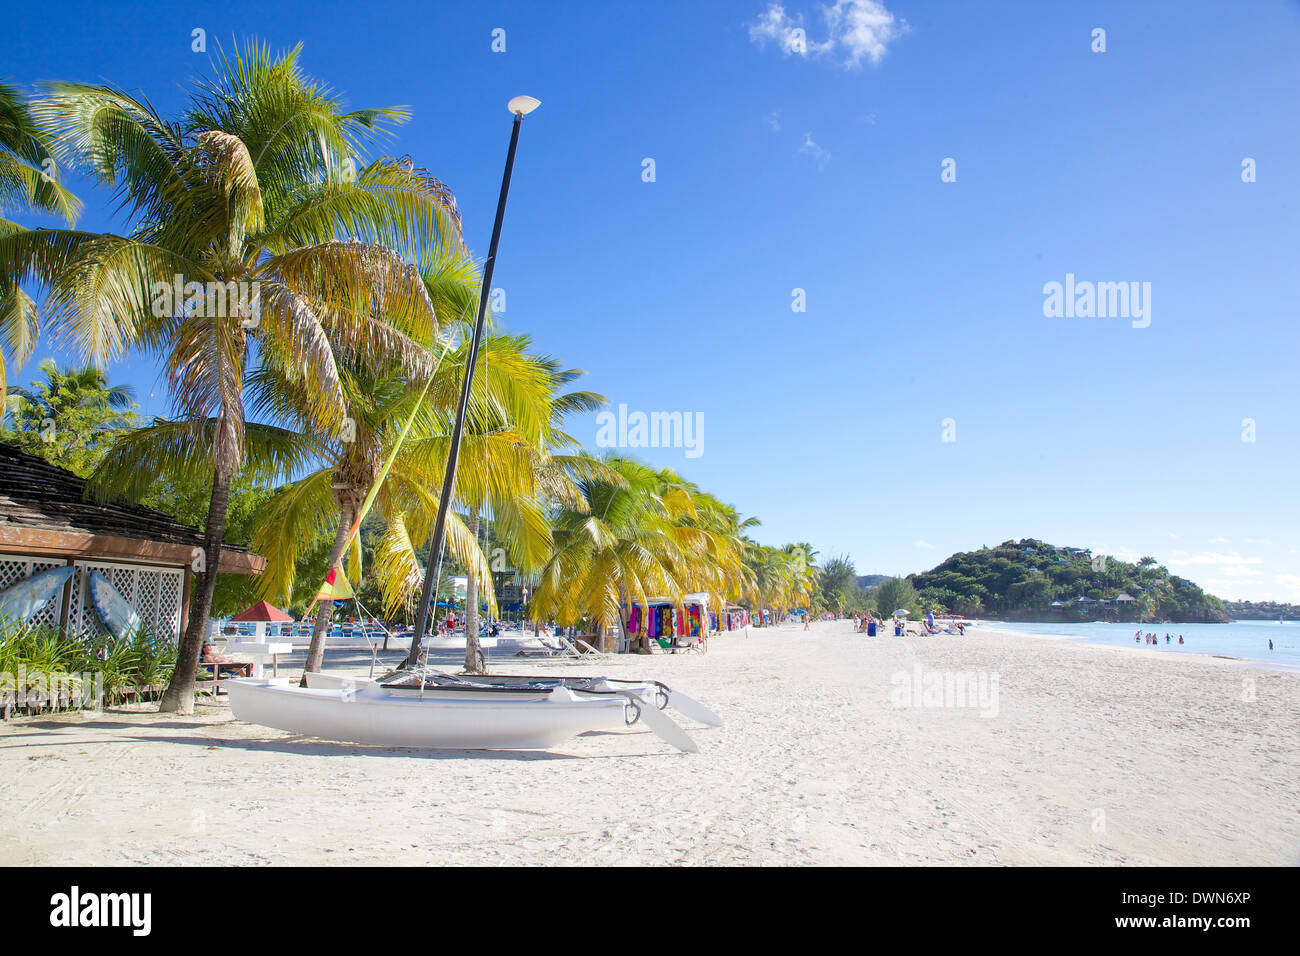 Beach, Jolly Harbour, St. Mary, Antigua, Leeward Islands, West Indies, Caribbean, Central America - Stock Image